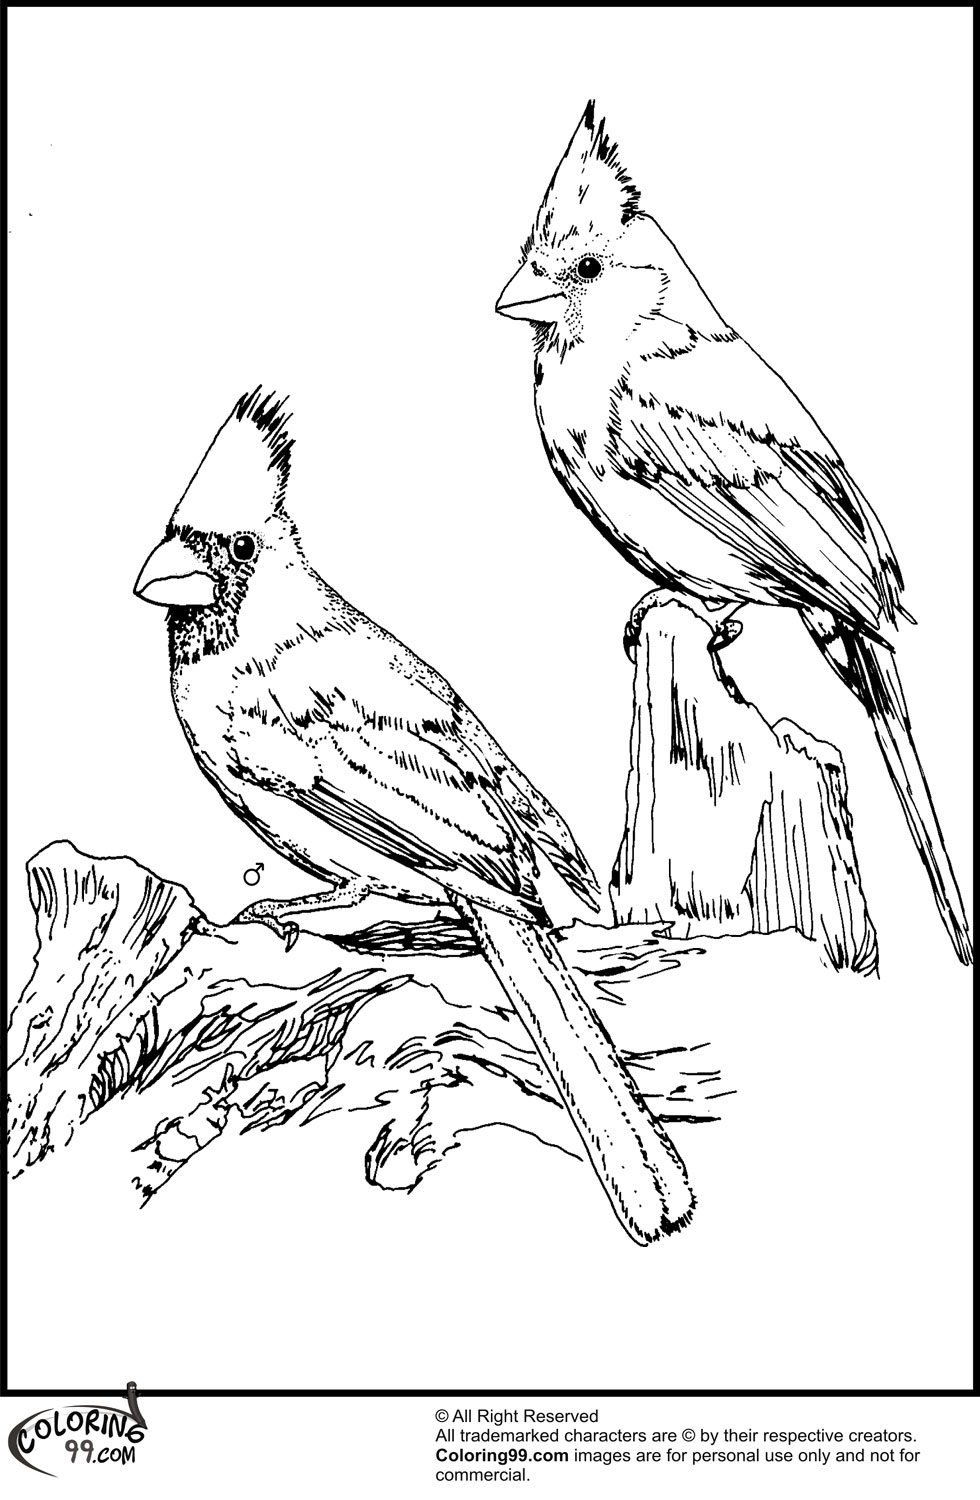 cardinals coloring pages with multiplication | American Cardinal Coloring Pages | Team colors